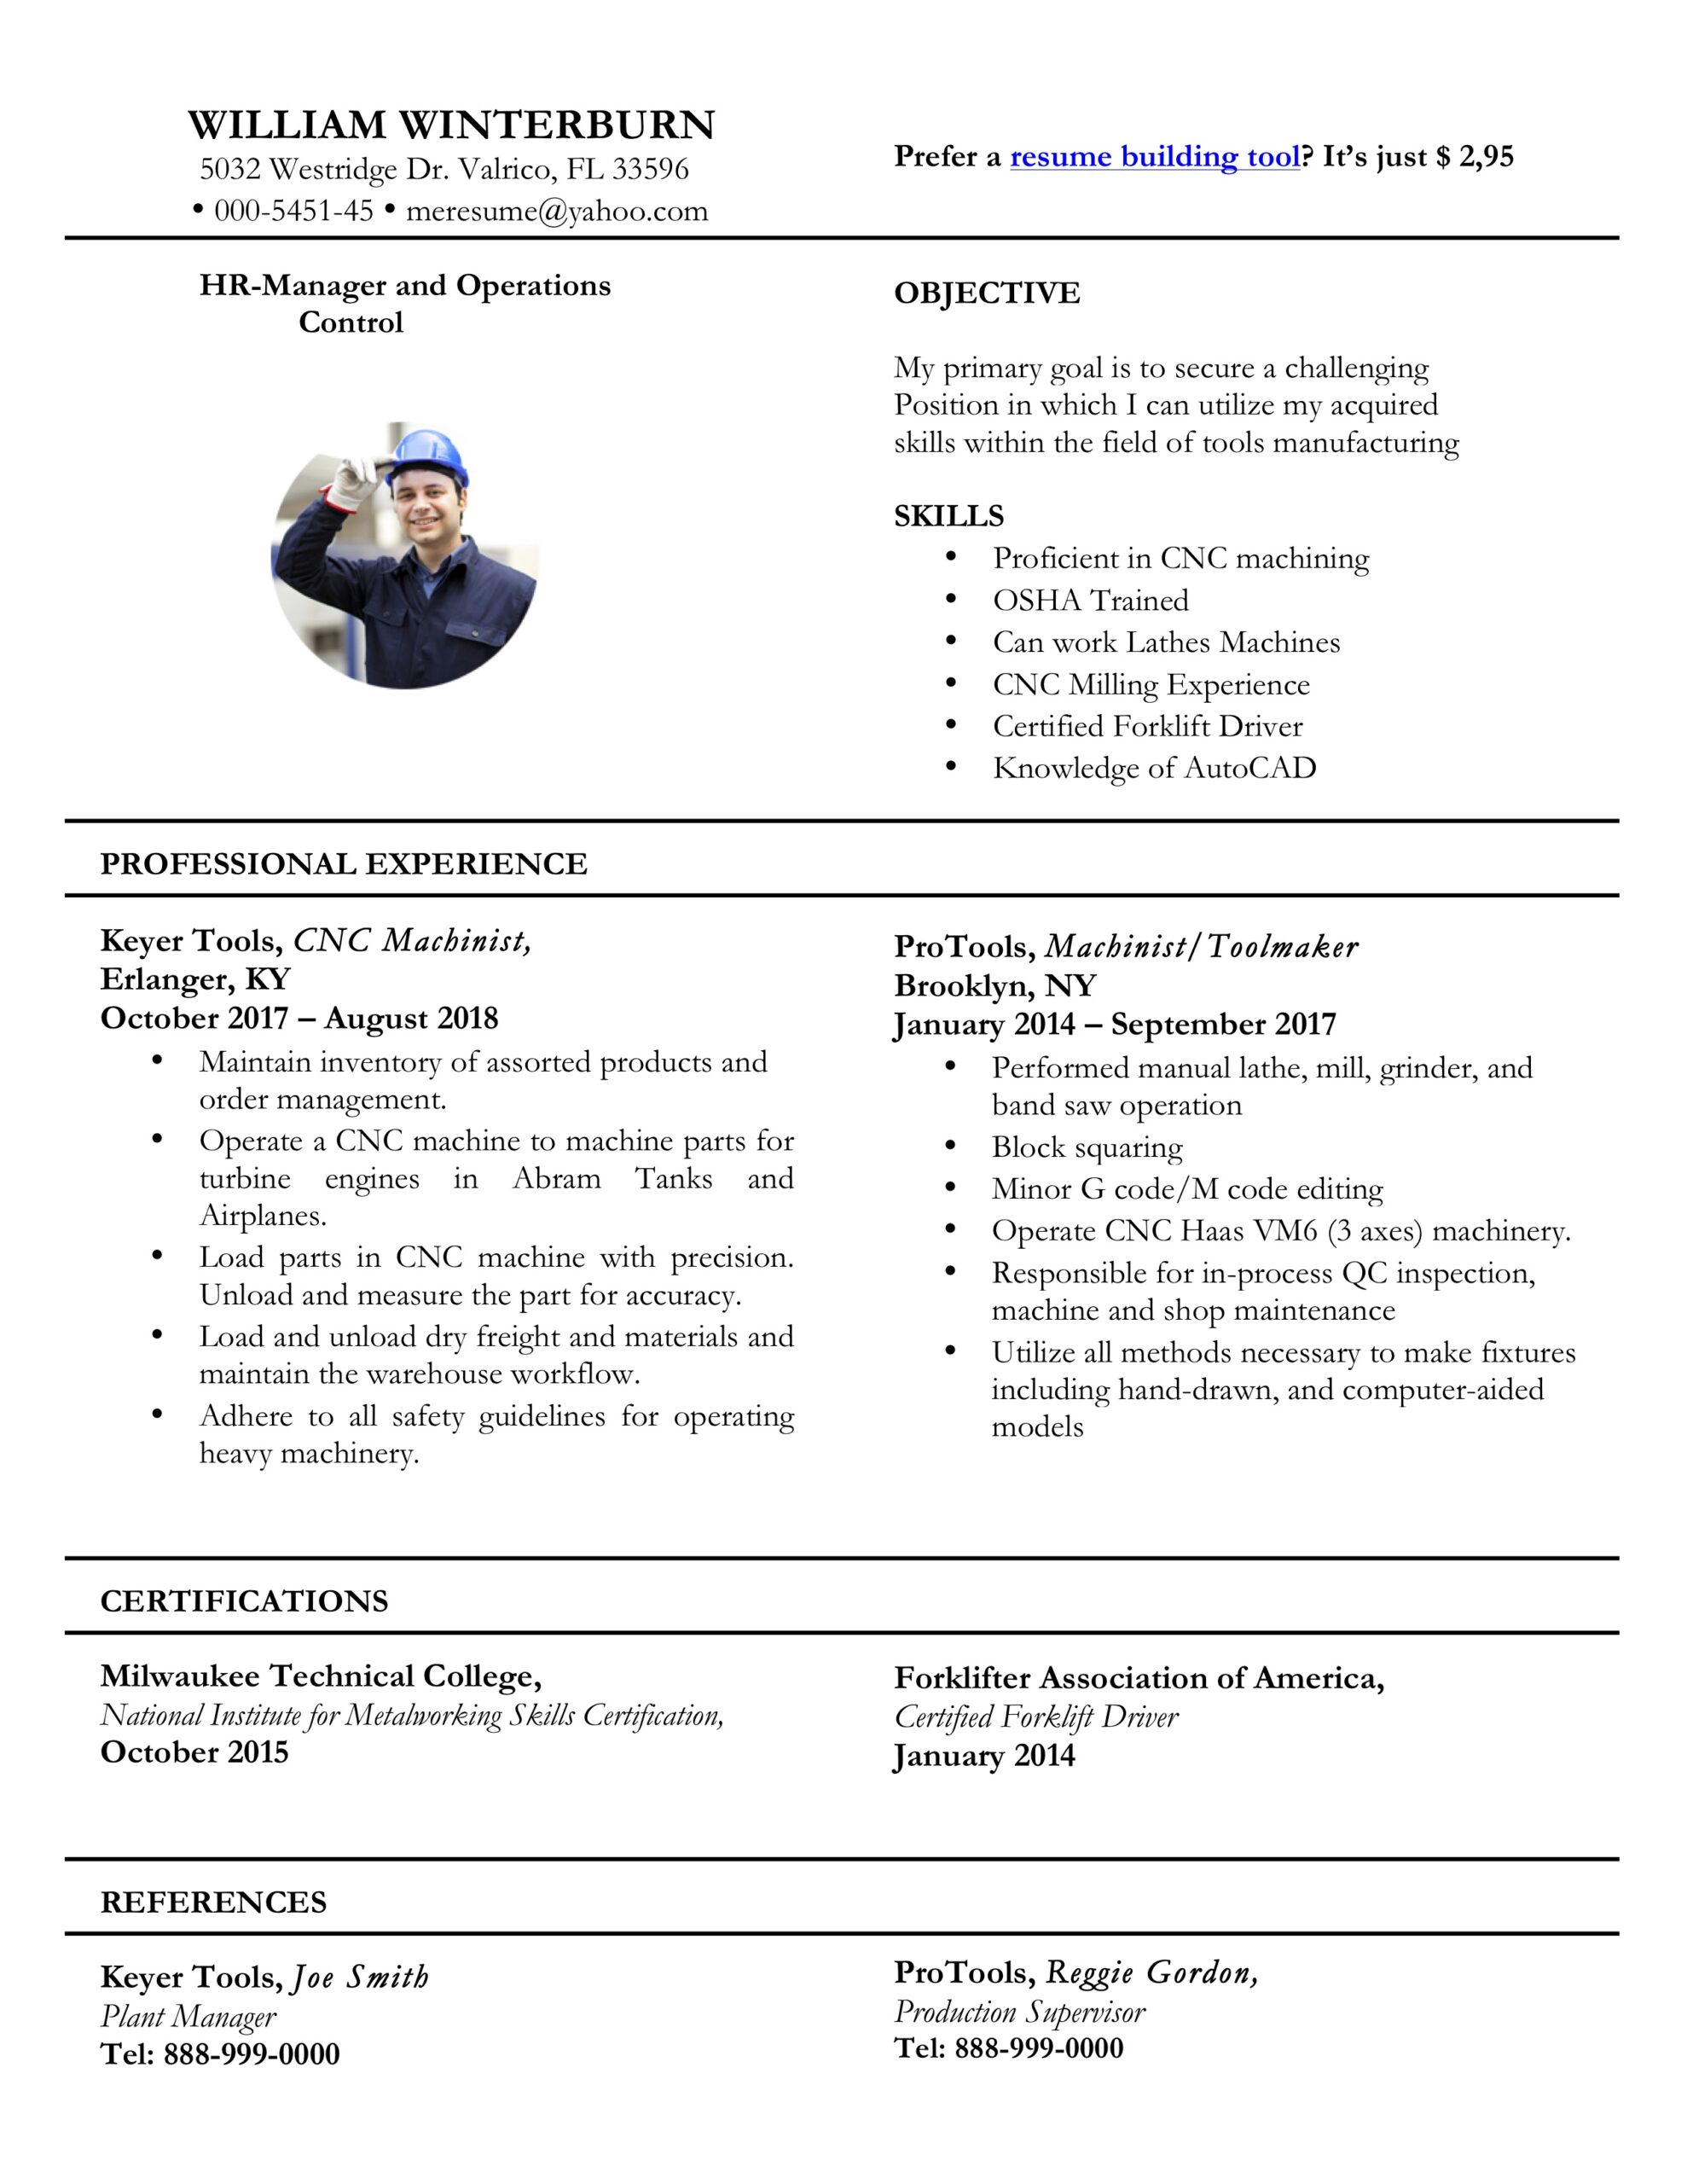 resume templates pdf word free downloads and guides readymade format template assistant Resume Free Readymade Resume Format